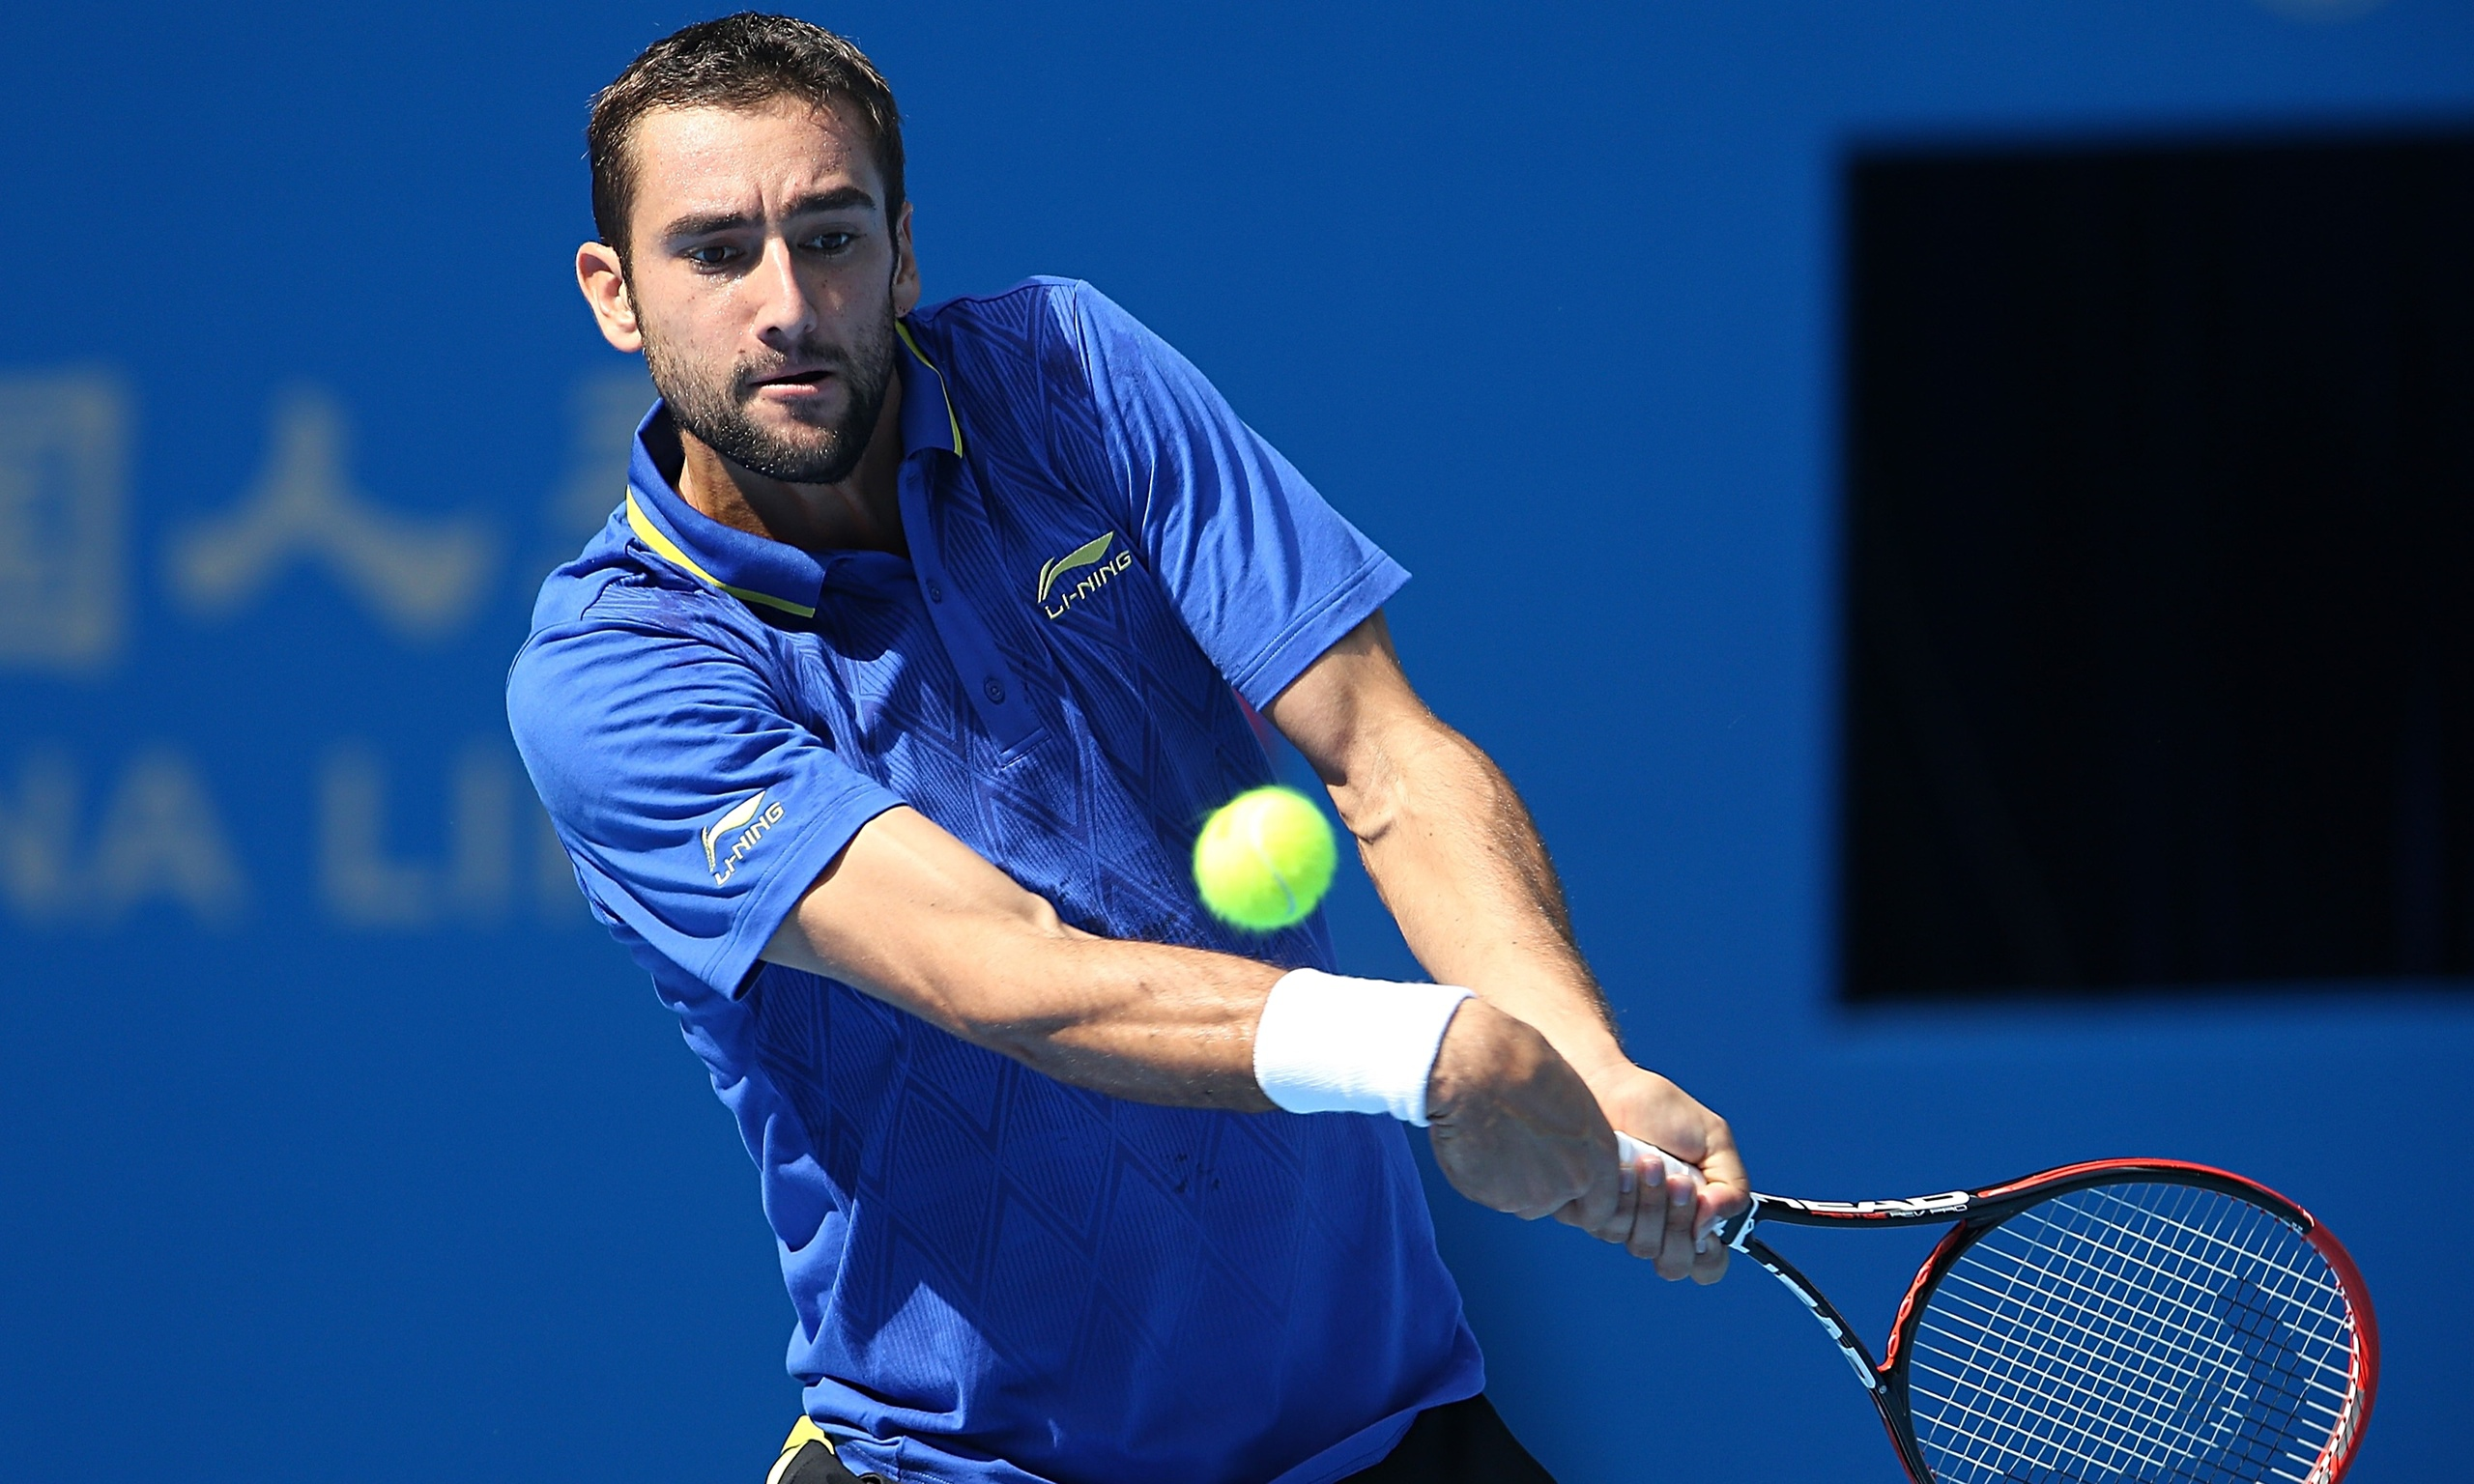 Marin Cilic earned a 4.5 million dollar salary, leaving the net worth at 16.3 million in 2017